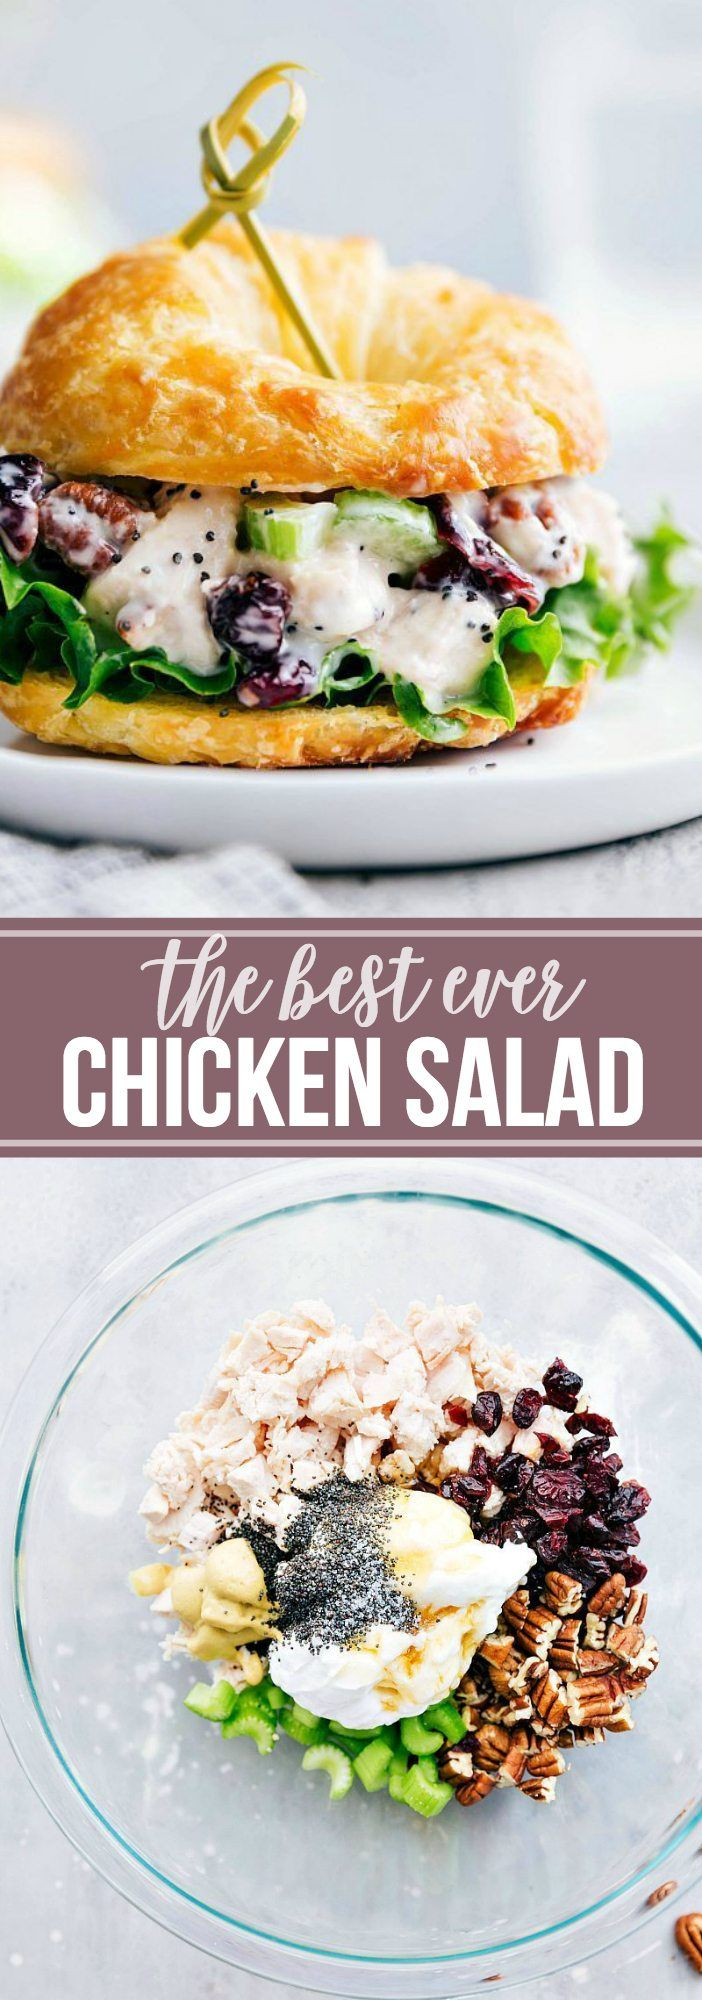 The BEST EVER chicken salad sandwiches! Perfect for the holidays to serve as an appetizer! | chelseasmessyapron.com | #chicken #salad #sandwiches #appetizer #lunch #sandwich #holiday #entertaining #fingerfoods #finger #food #easy #quick #poppyseed #cranberry #celery #rotisseriechicken